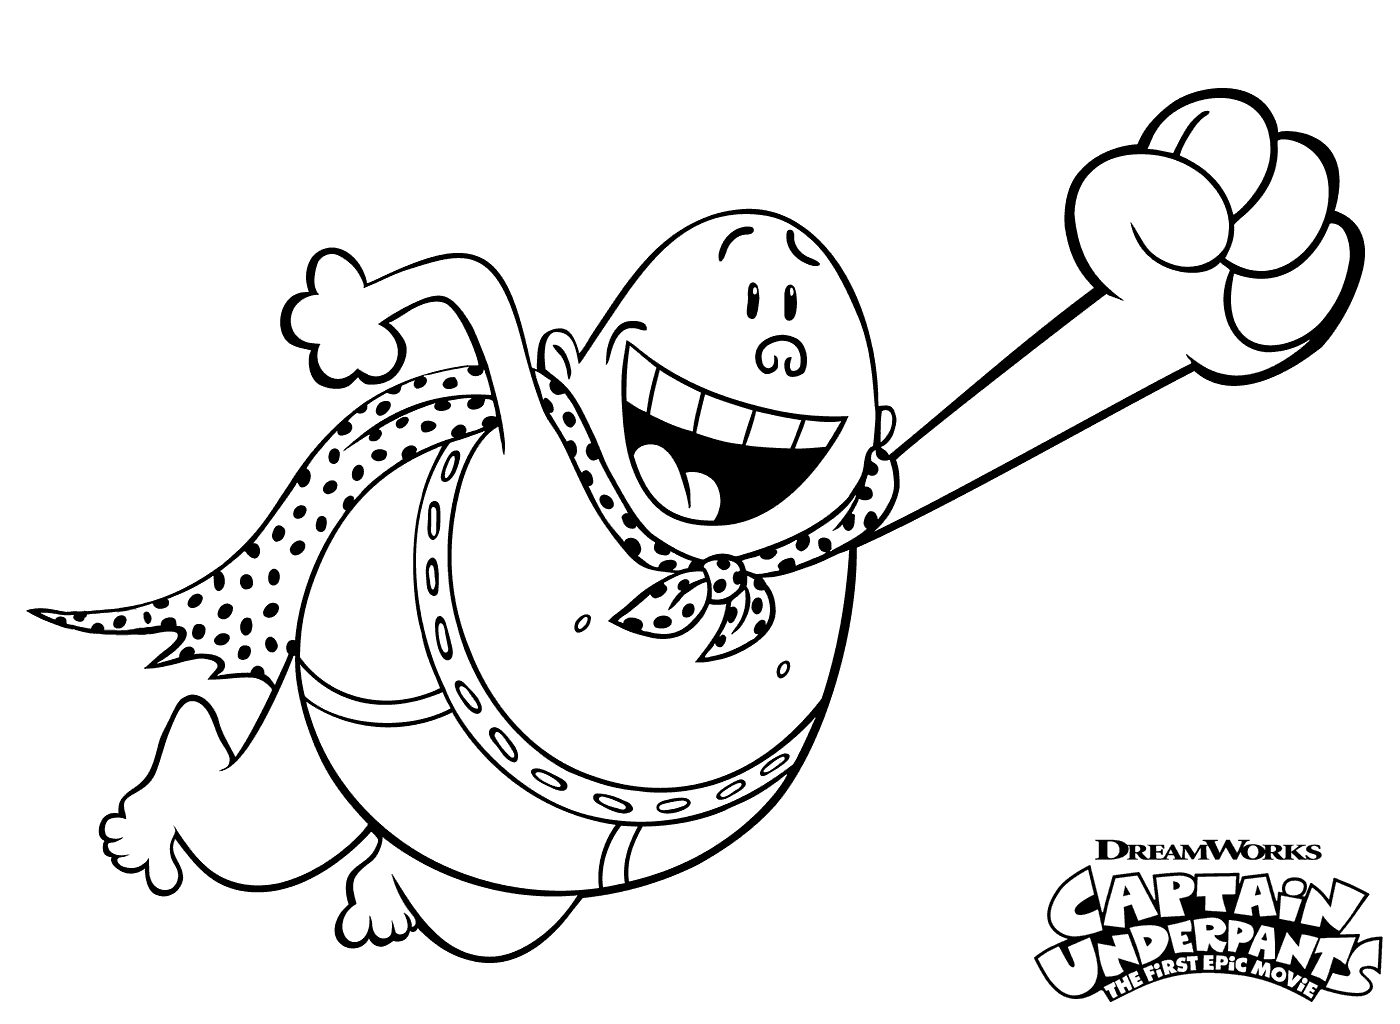 Pin By Laura Endy On Captain Underpants The First Epic Movie Cartoon Coloring Pages Superhero Coloring Pages Coloring Pages